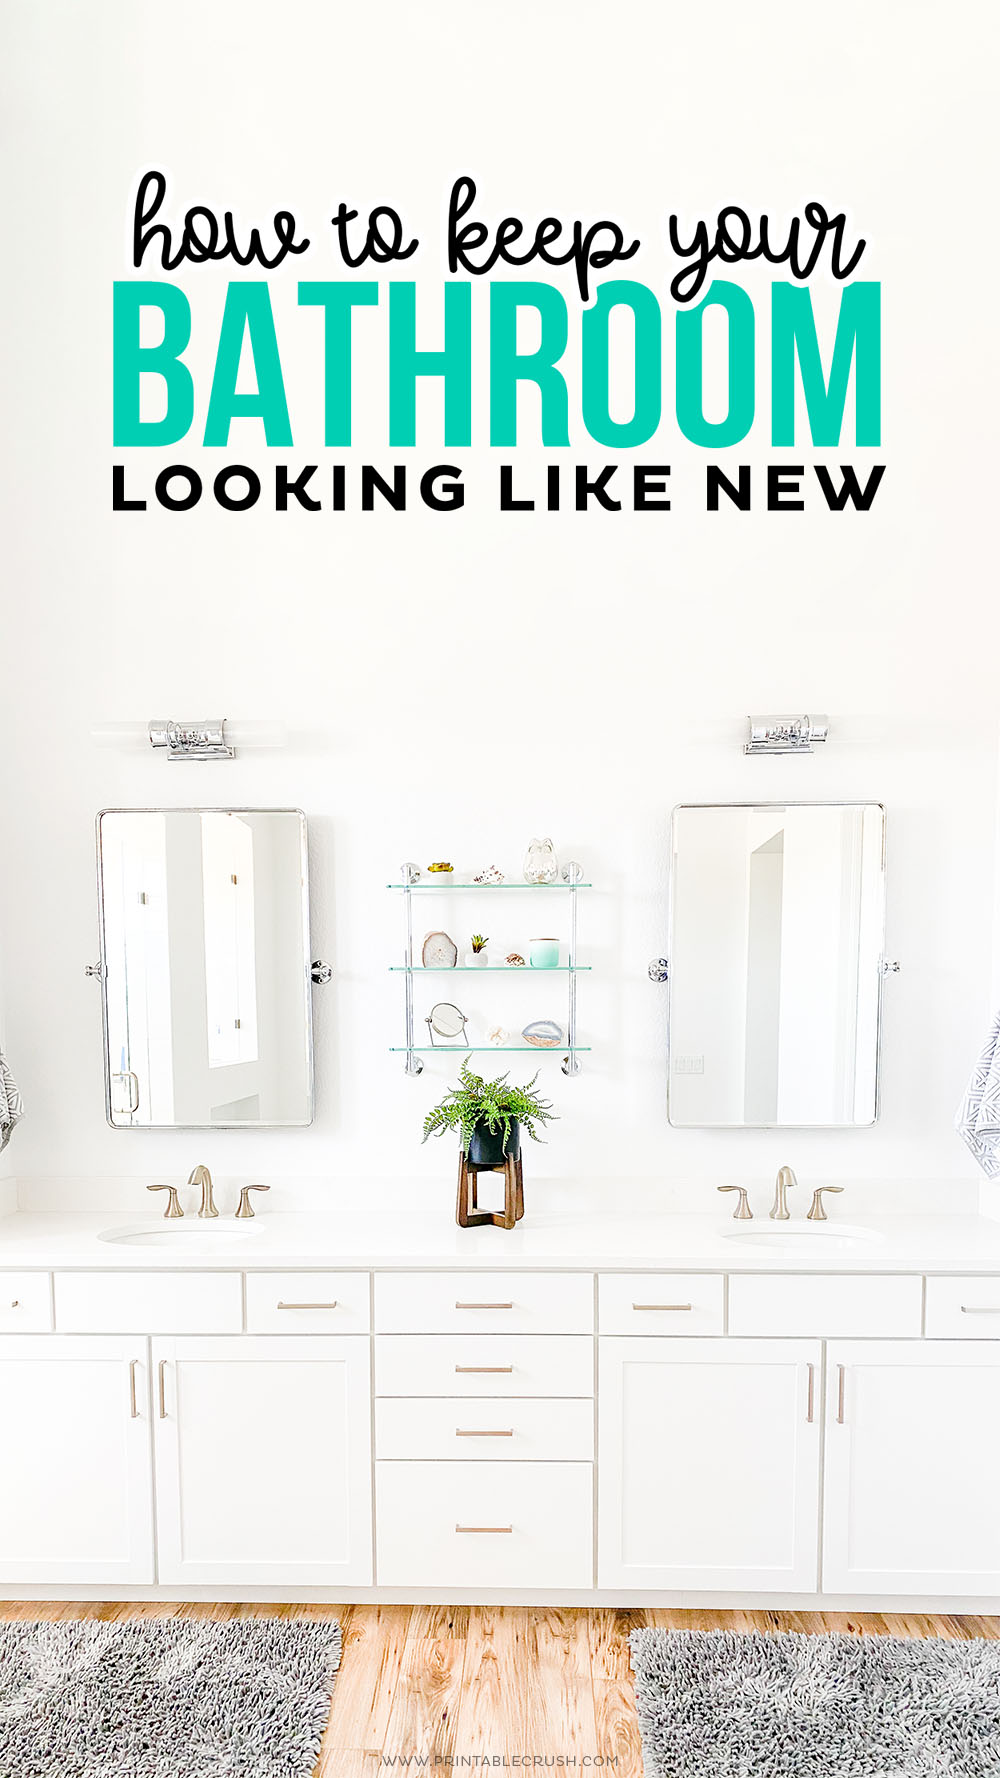 Keep Your Bathroom Looking New - Clean bathroom - Printable Crush